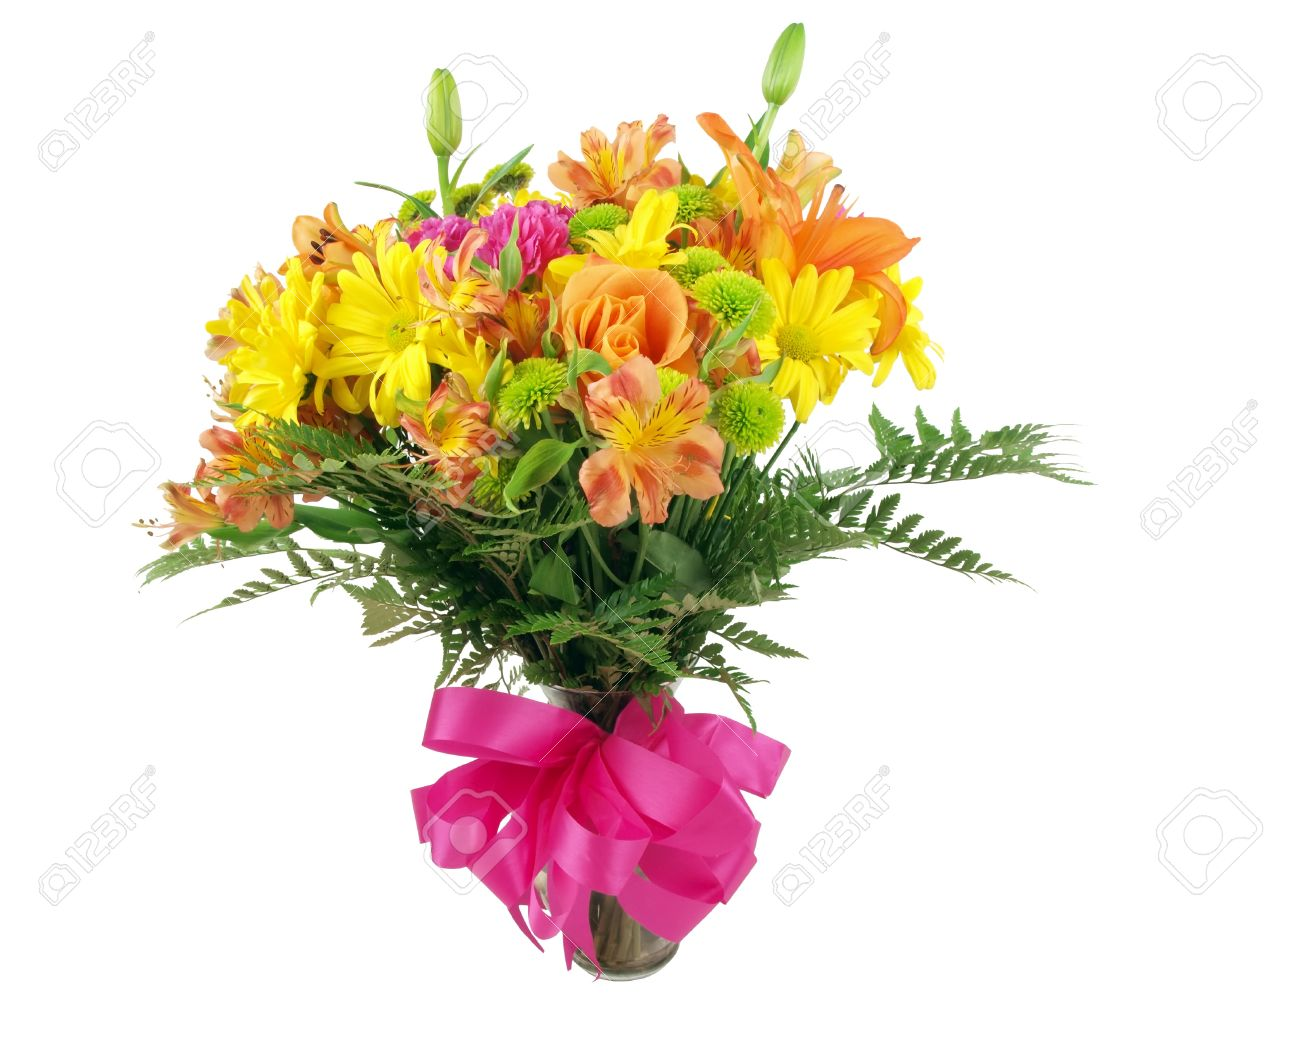 A Colorful Flower Bouquet In A Clear Glass Vase On A White ...